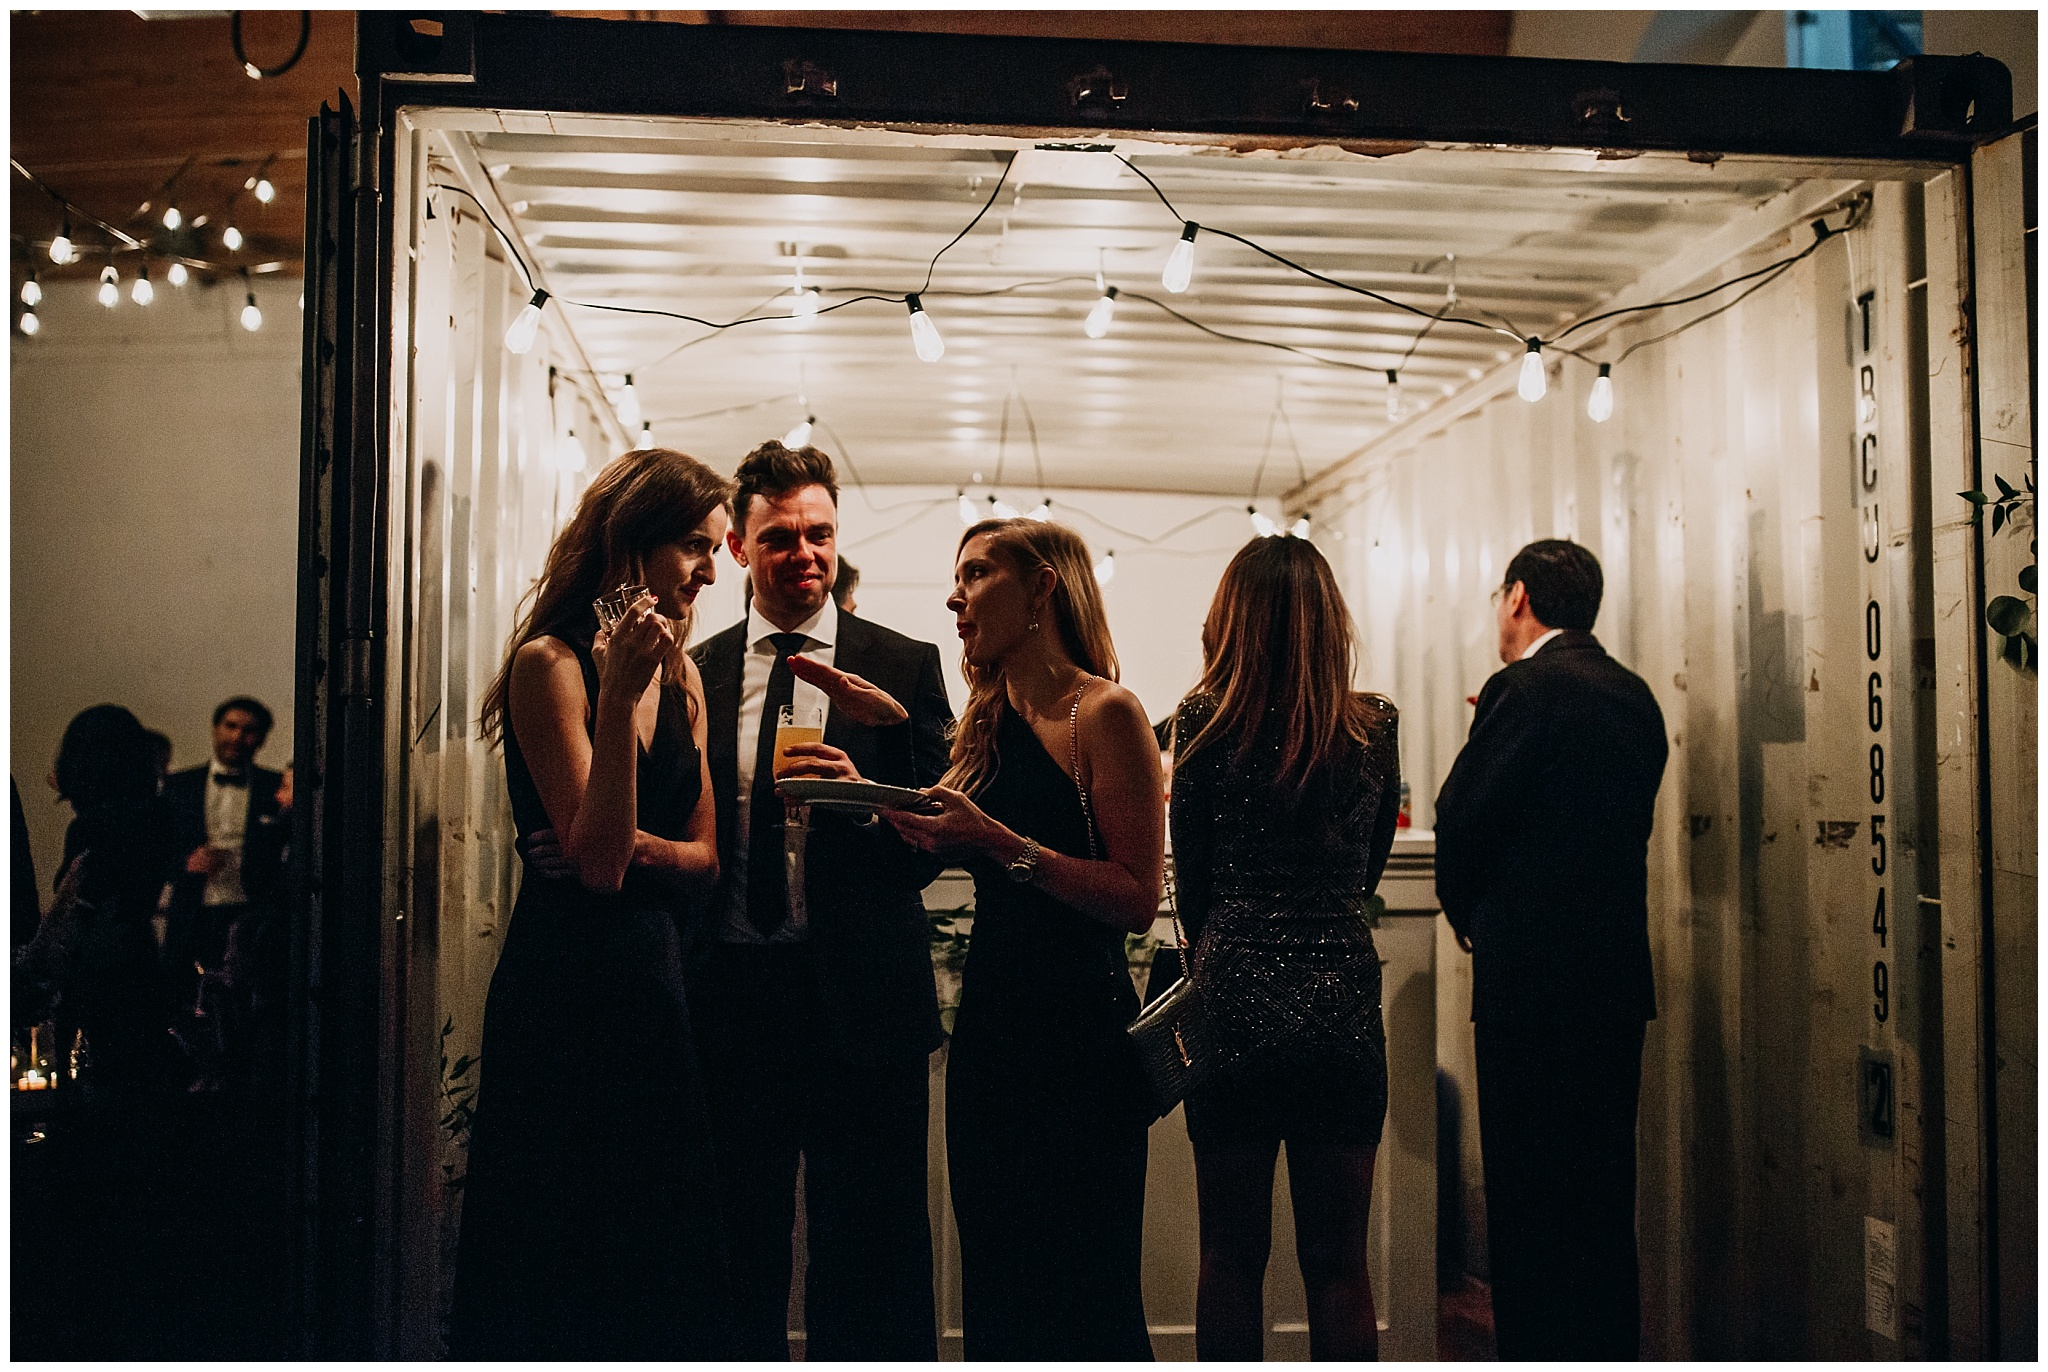 settlement building shipping container bar new years eve wedding